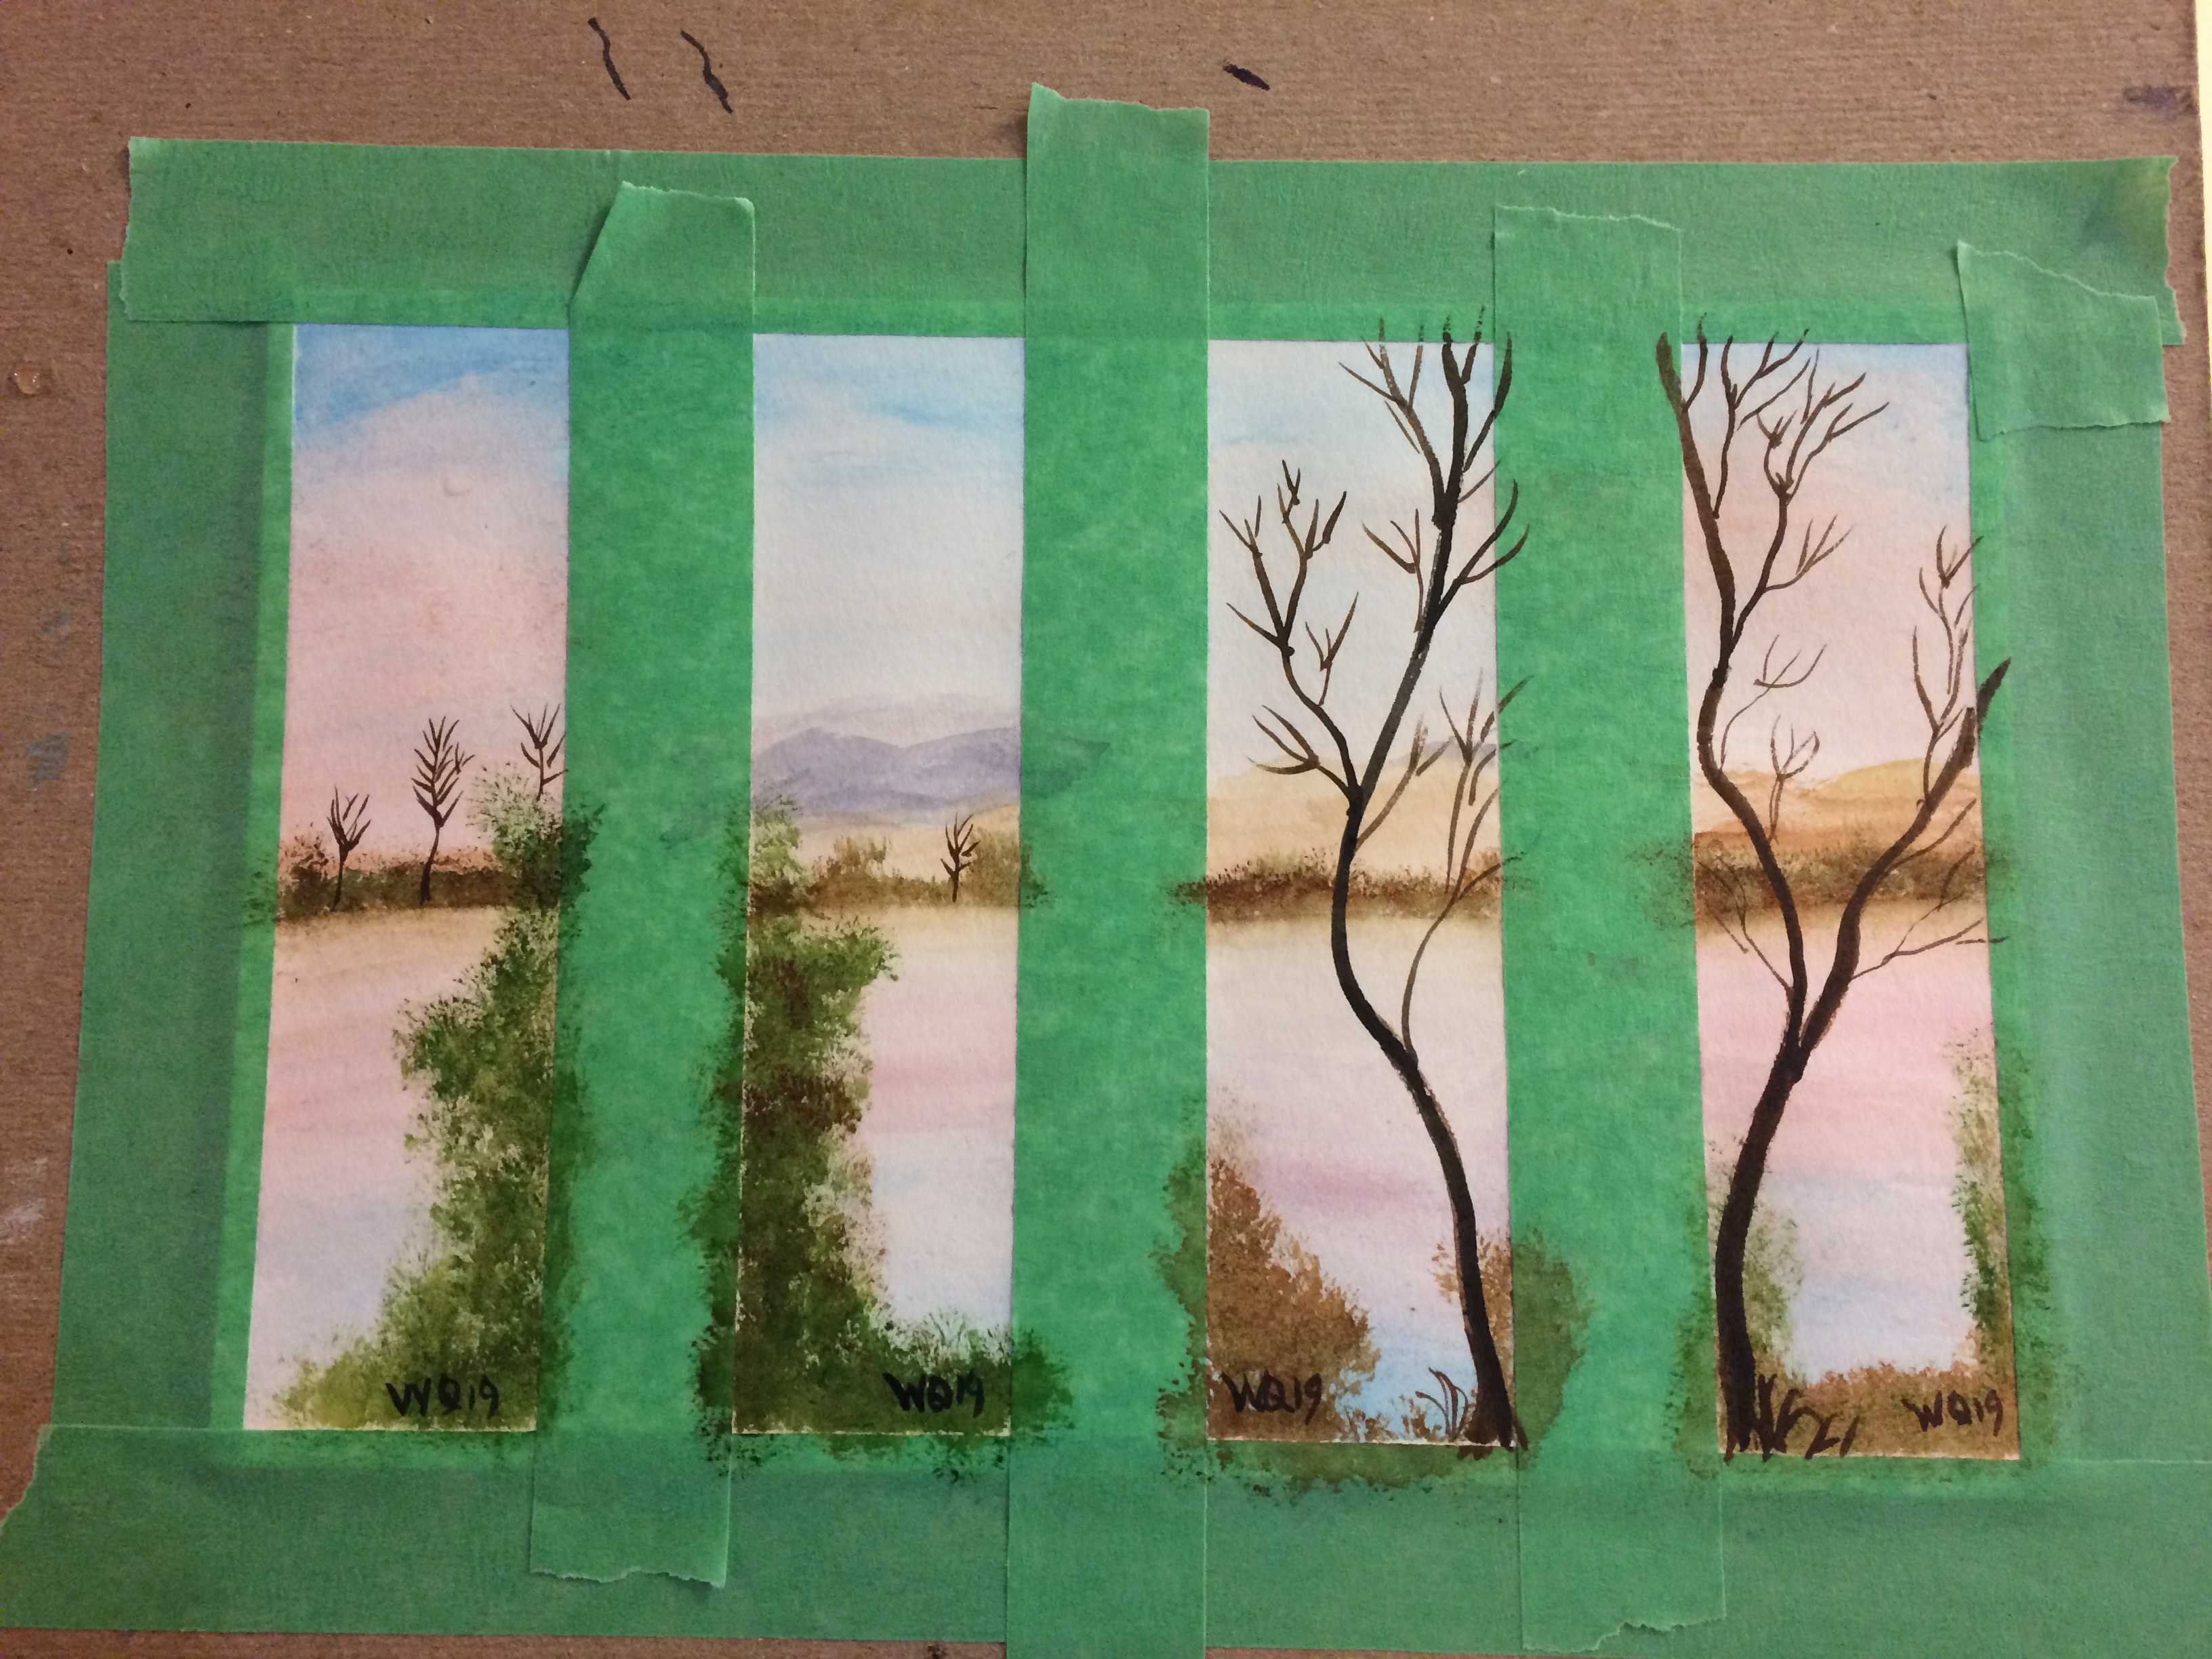 watercolour paper taped in four parts with a painting in each part of landscape: sky, water, trees.